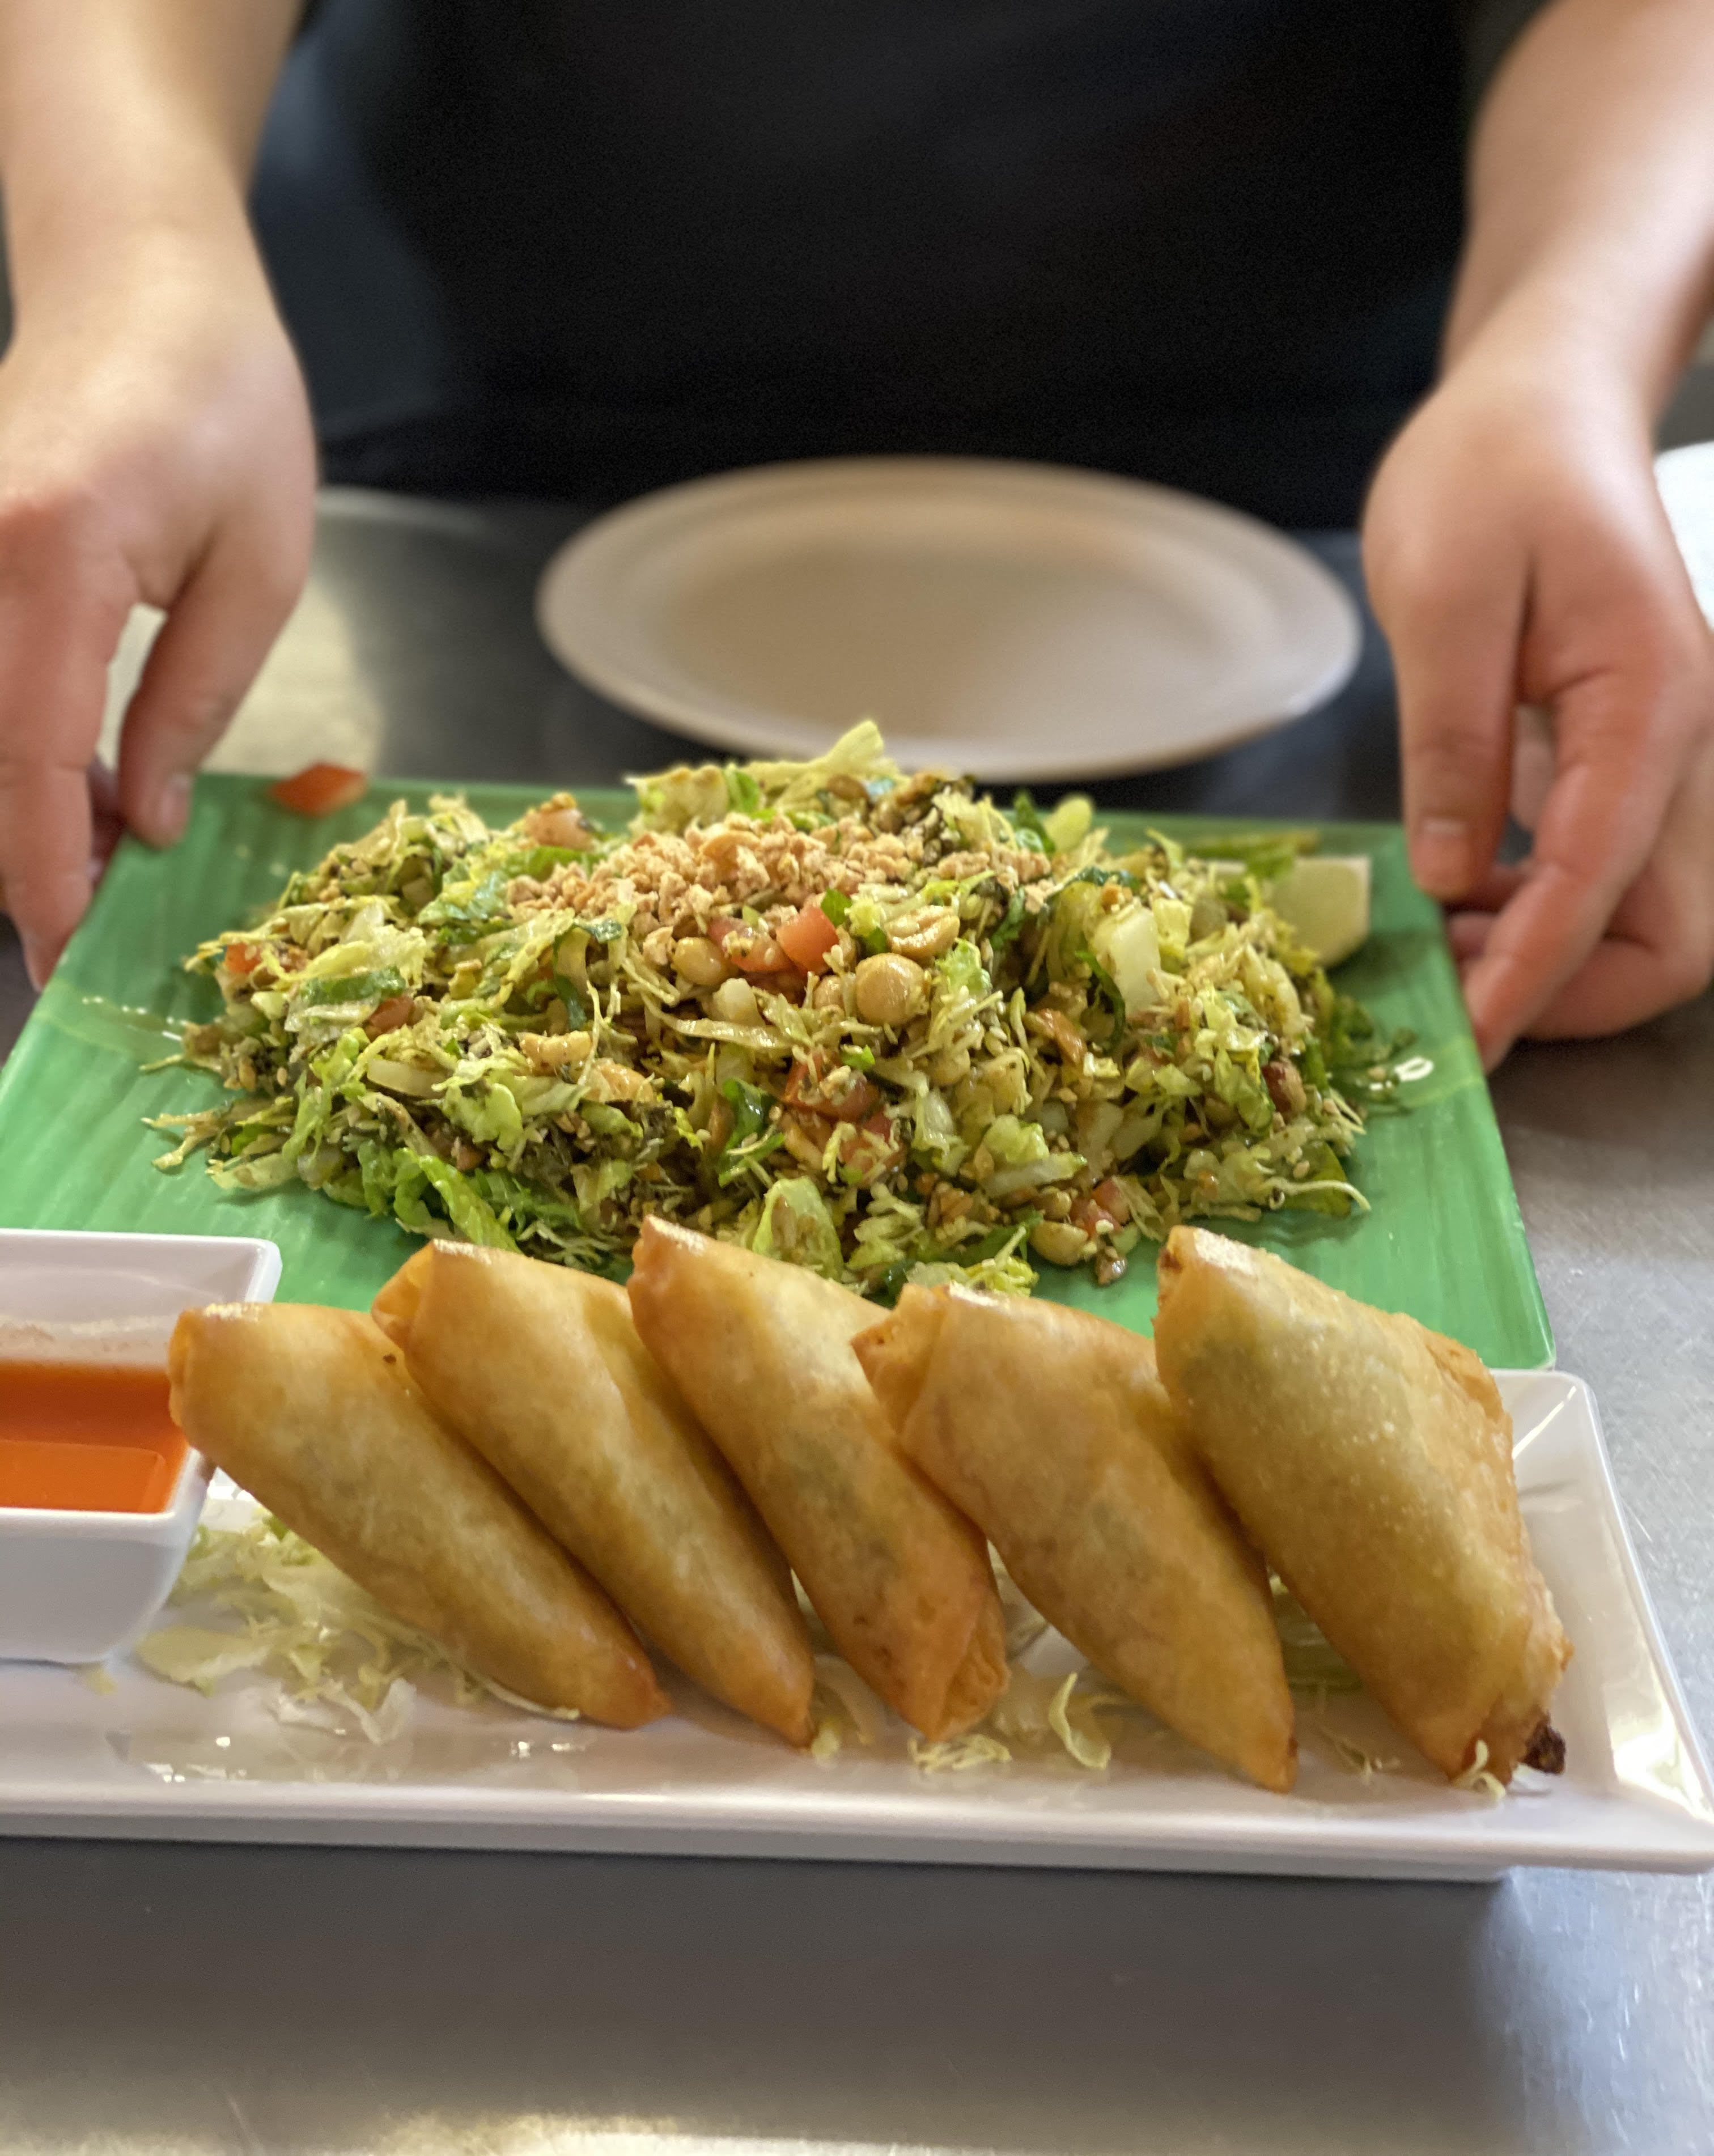 A white plate with five samosas sits next to a white  container of dipping sauce. A green plate of a chopped, slaw-like salad sits behind it, being placed by two hands